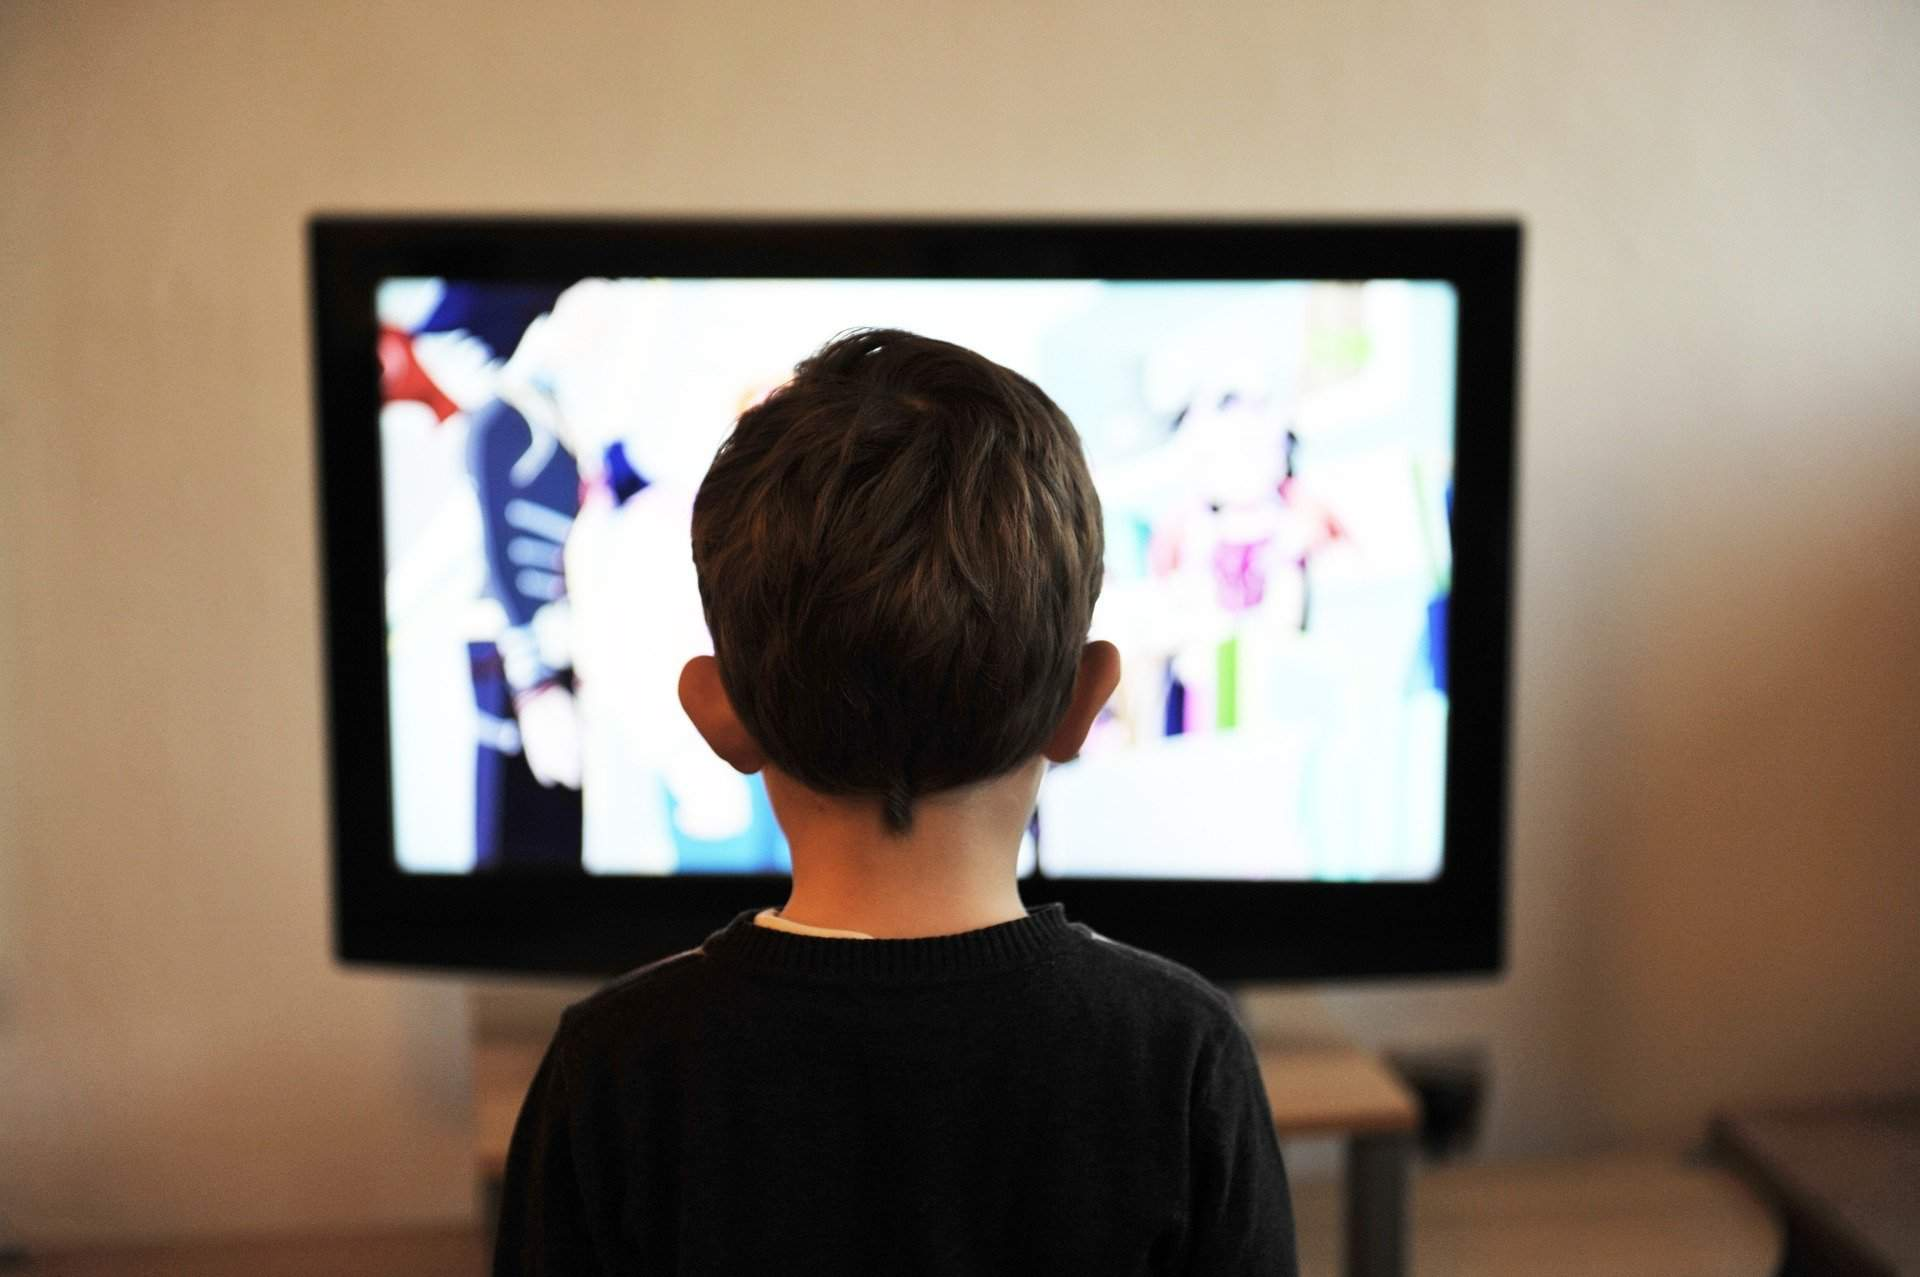 children-tv-television-media